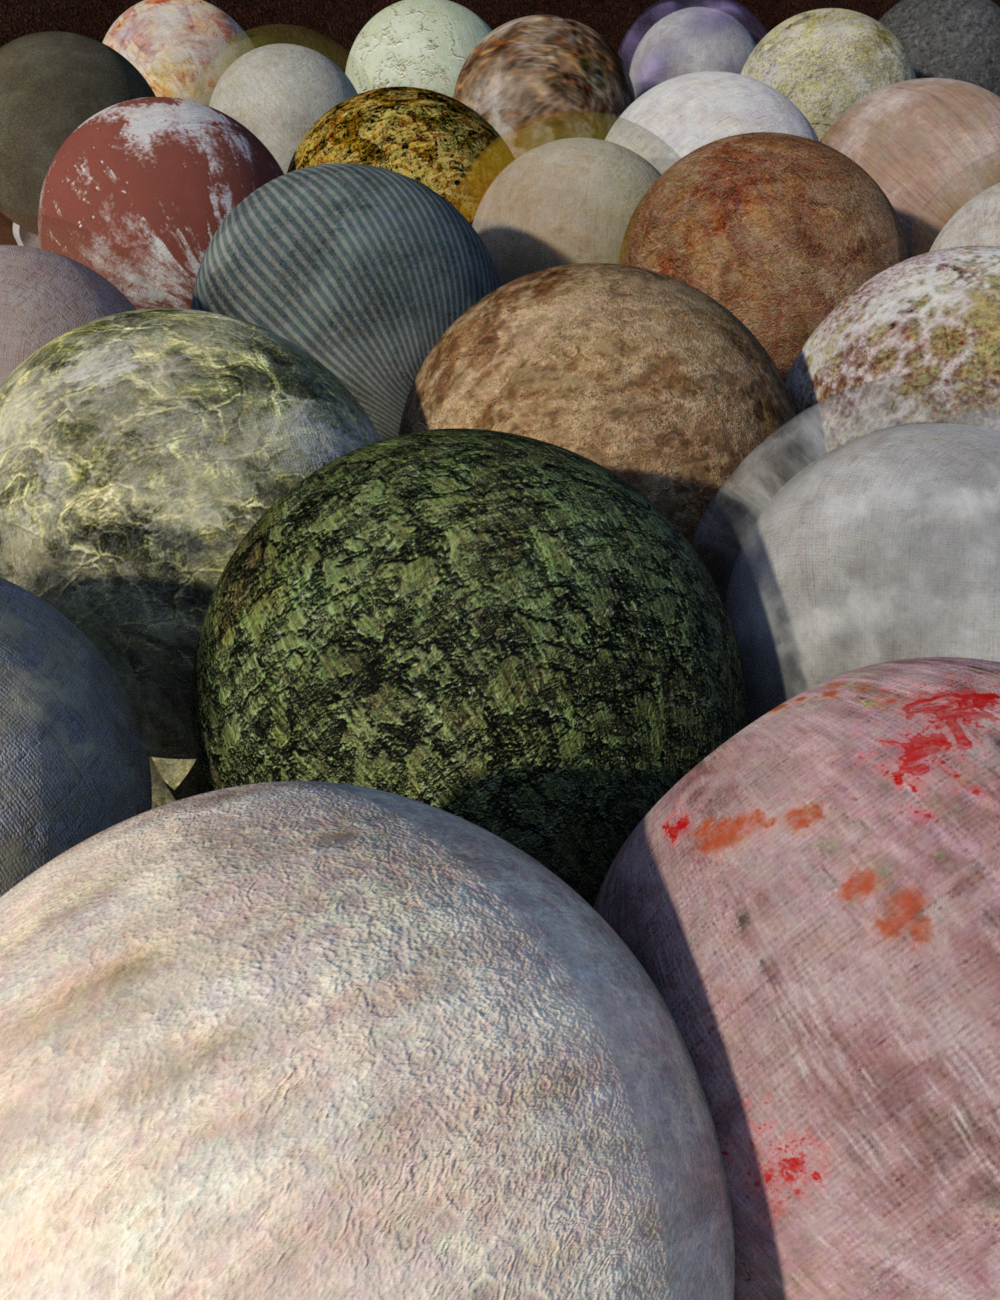 FSL Filthy Dirty Iray Shaders by: Fuseling, 3D Models by Daz 3D